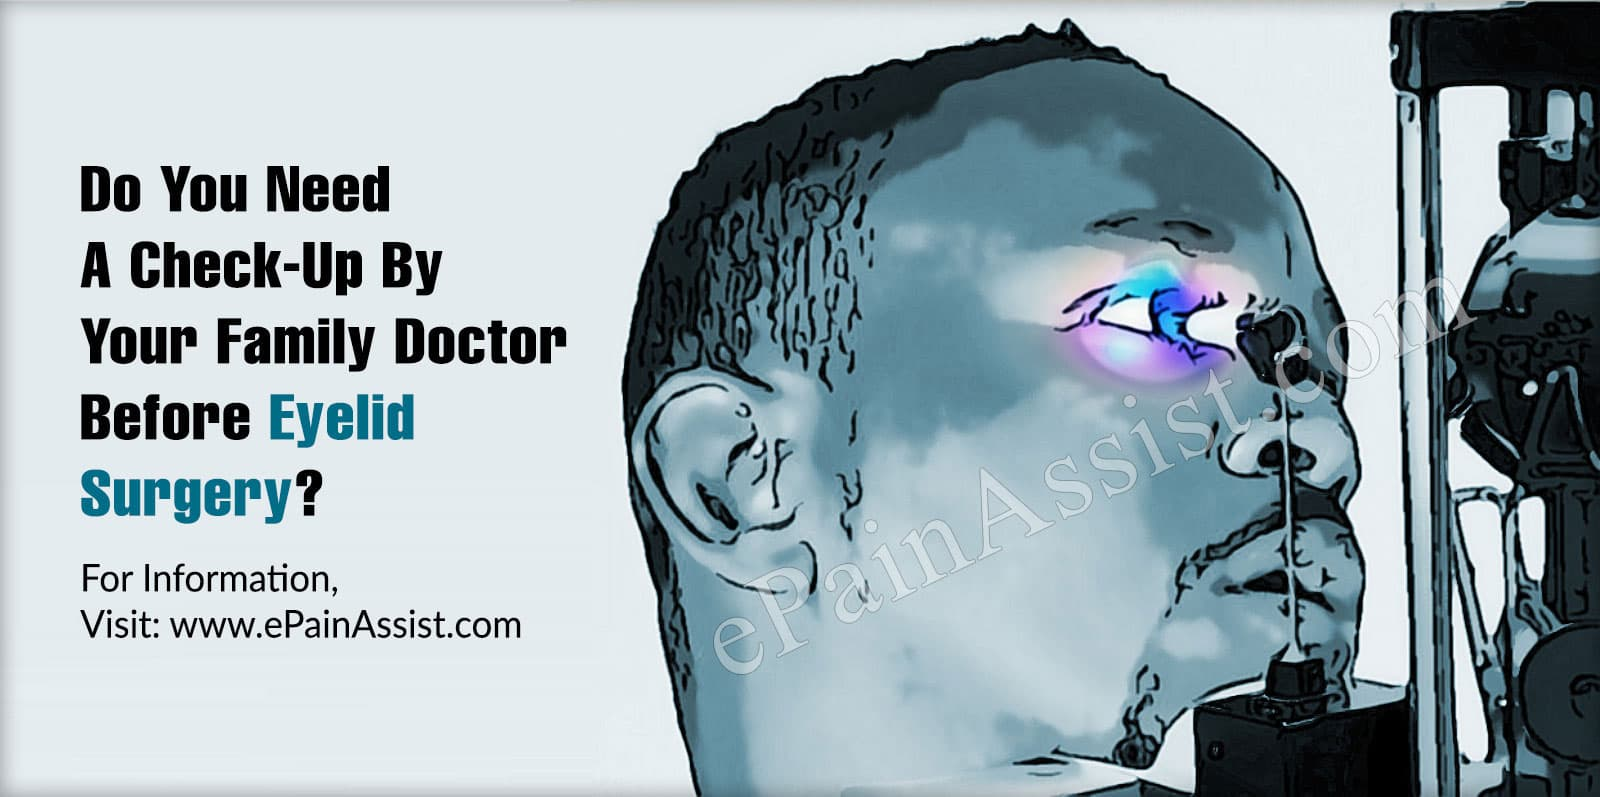 Do You Need A Checkup By Your Family Doctor Before Eyelid Surgery?